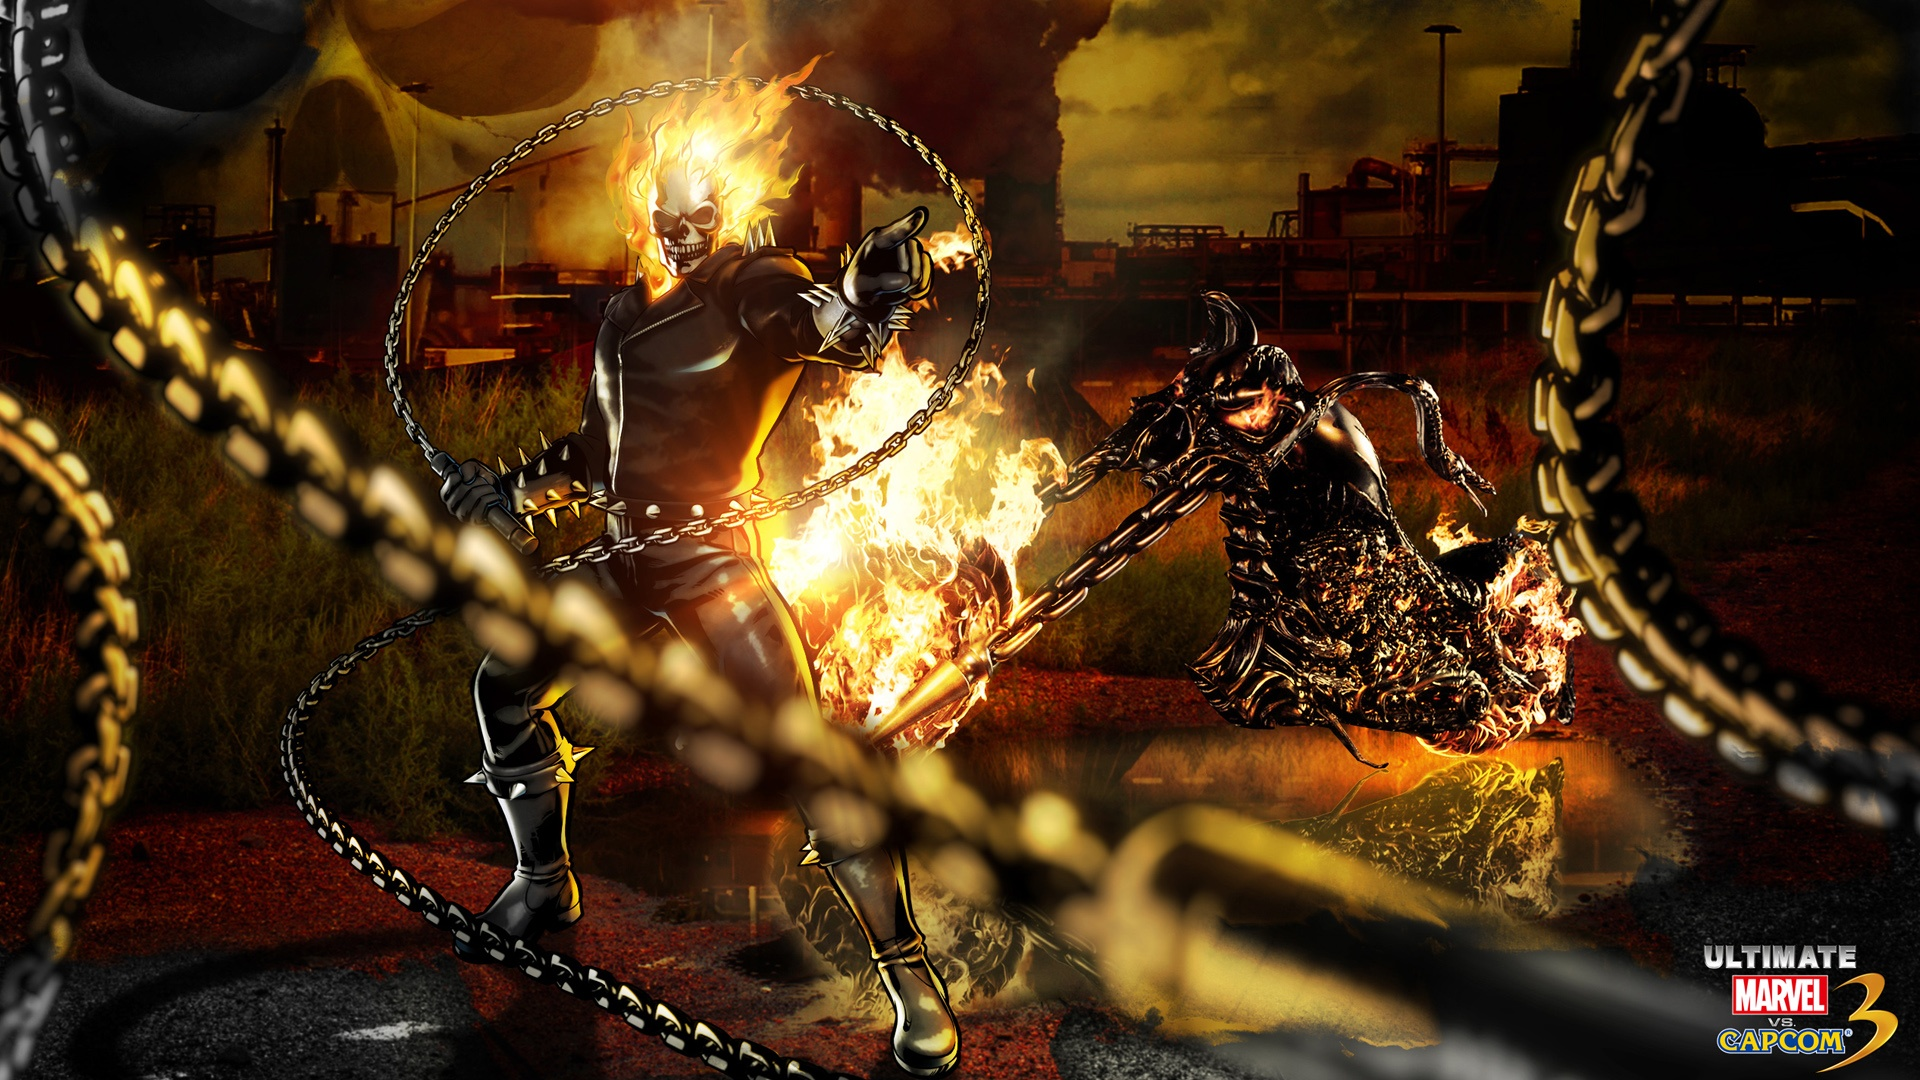 Ghost Rider Marvel Vs Capcom Wallpapers In Jpg Format For Free Download